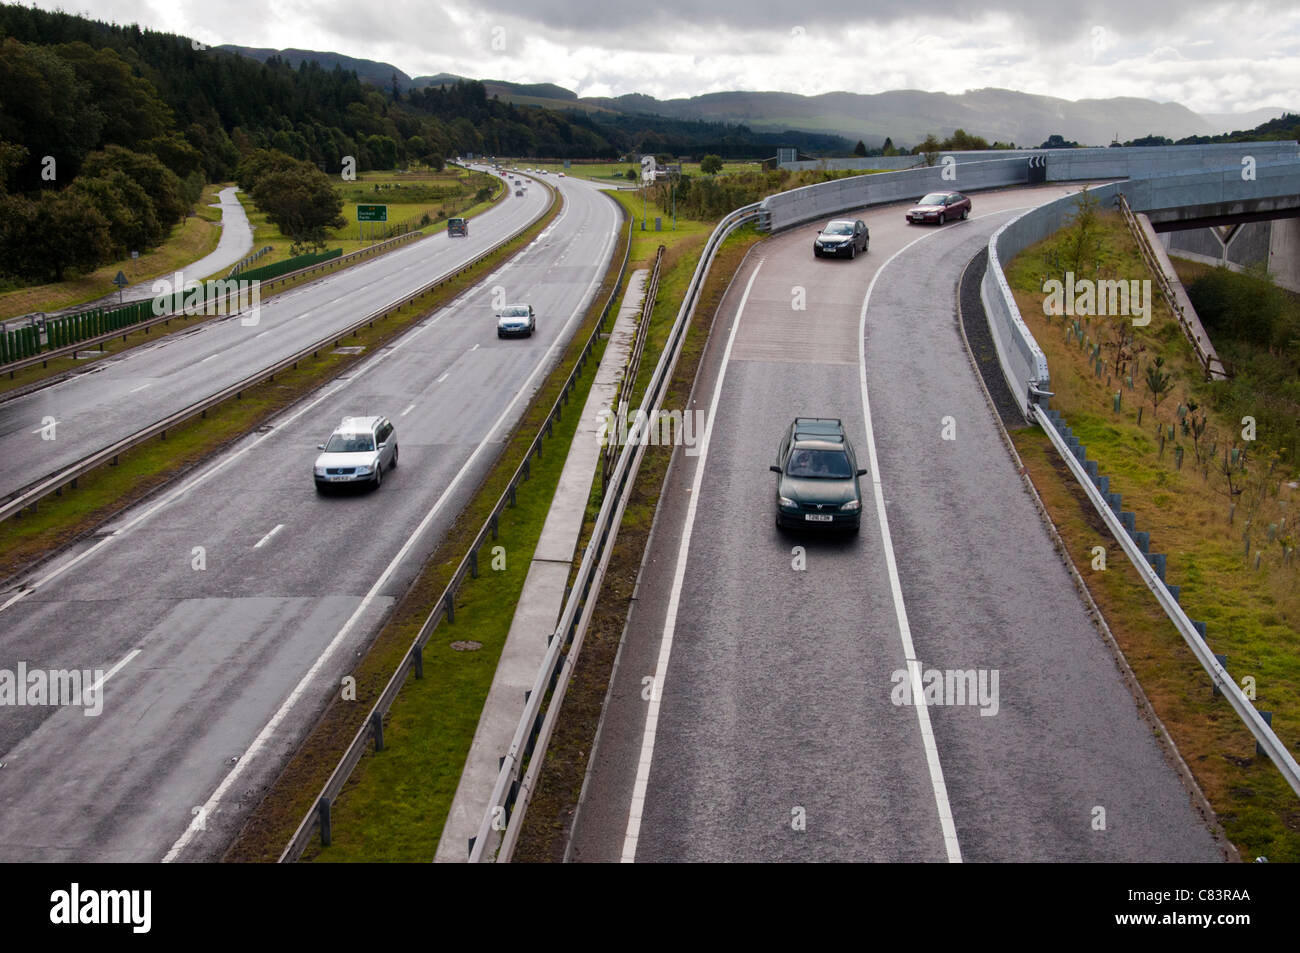 The new Road Junction at Balinluig. - Stock Image